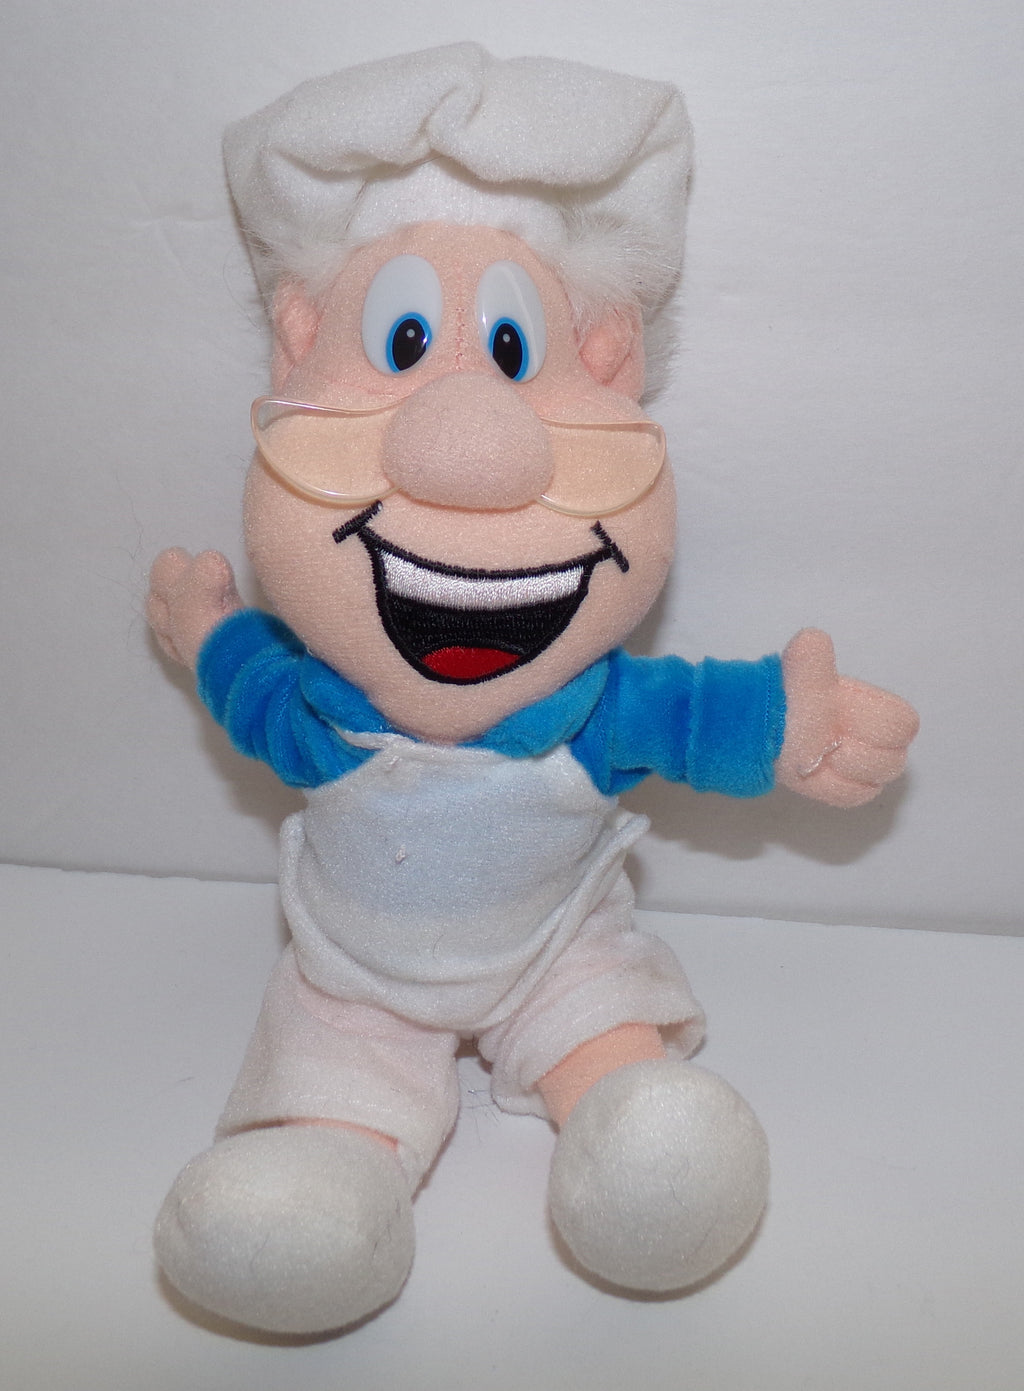 Cinnamon Toast Crunch Plush Wendell - We Got Character